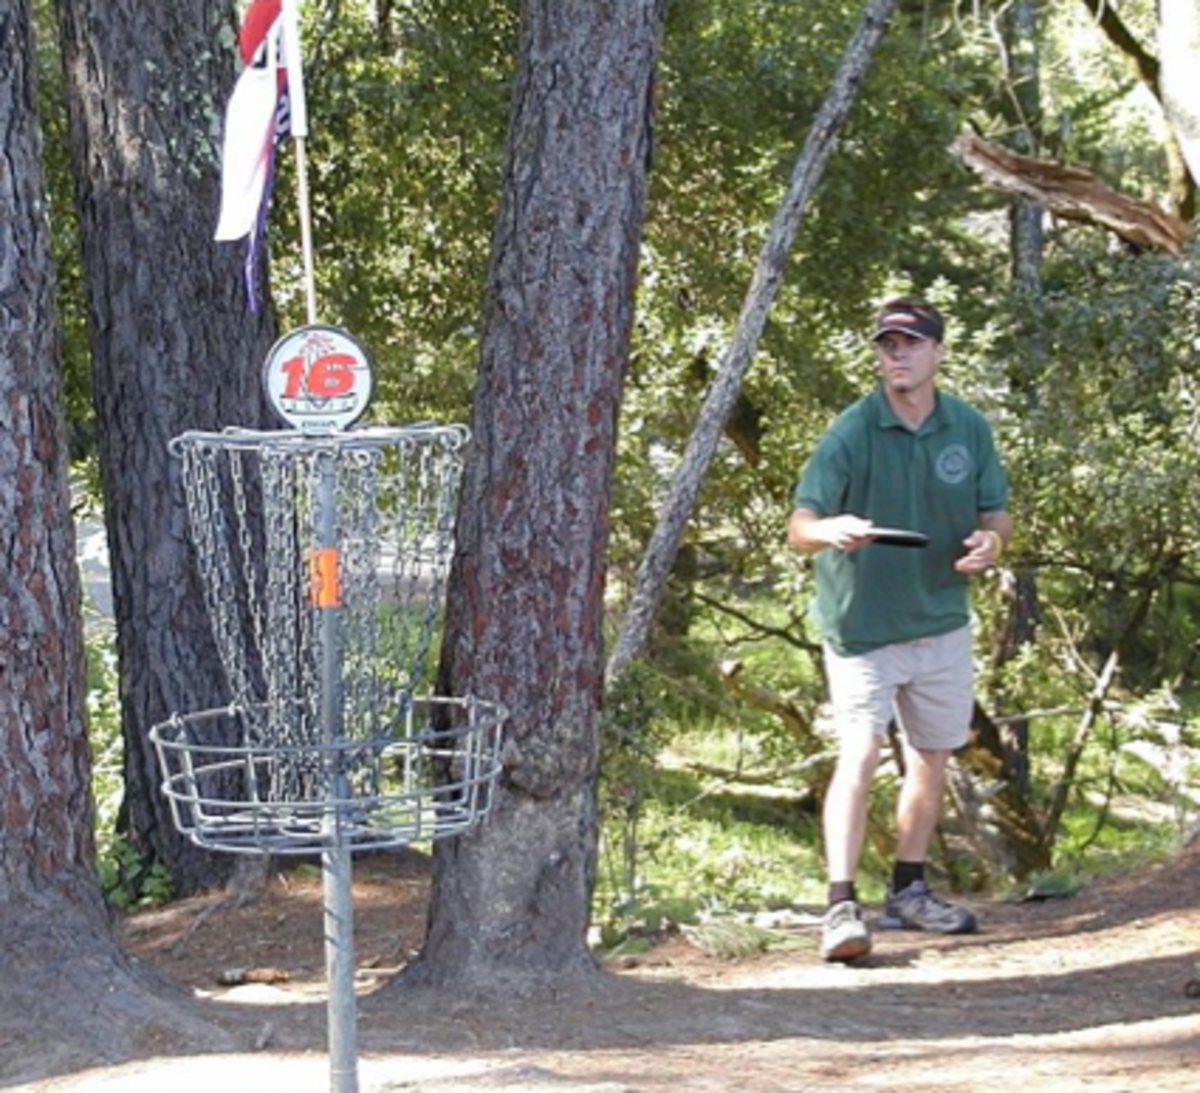 Disc golf courses can be found in several locations in the Waco area park system.